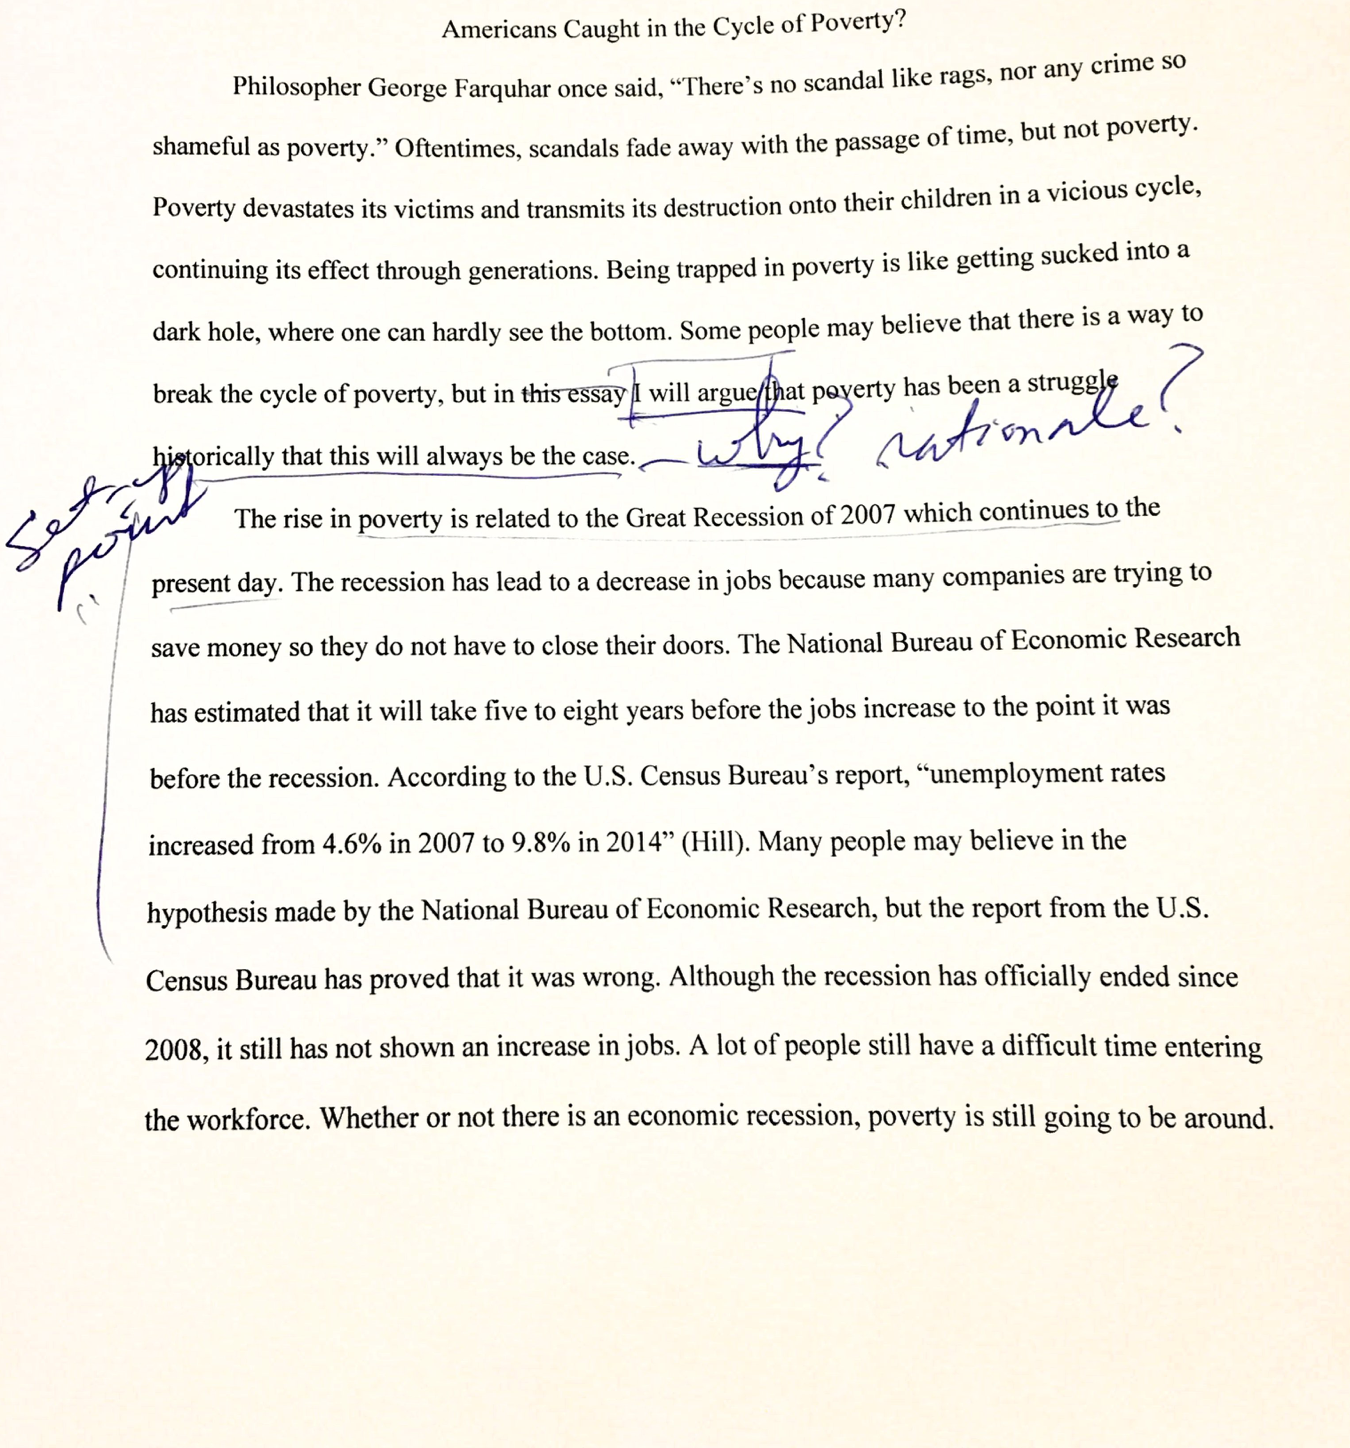 012 Essay Example Rewrite My Rewriter Jury Service Dr Article Please Help Me Write For Surprising With Introduction Sound Better Research Paper Free Full